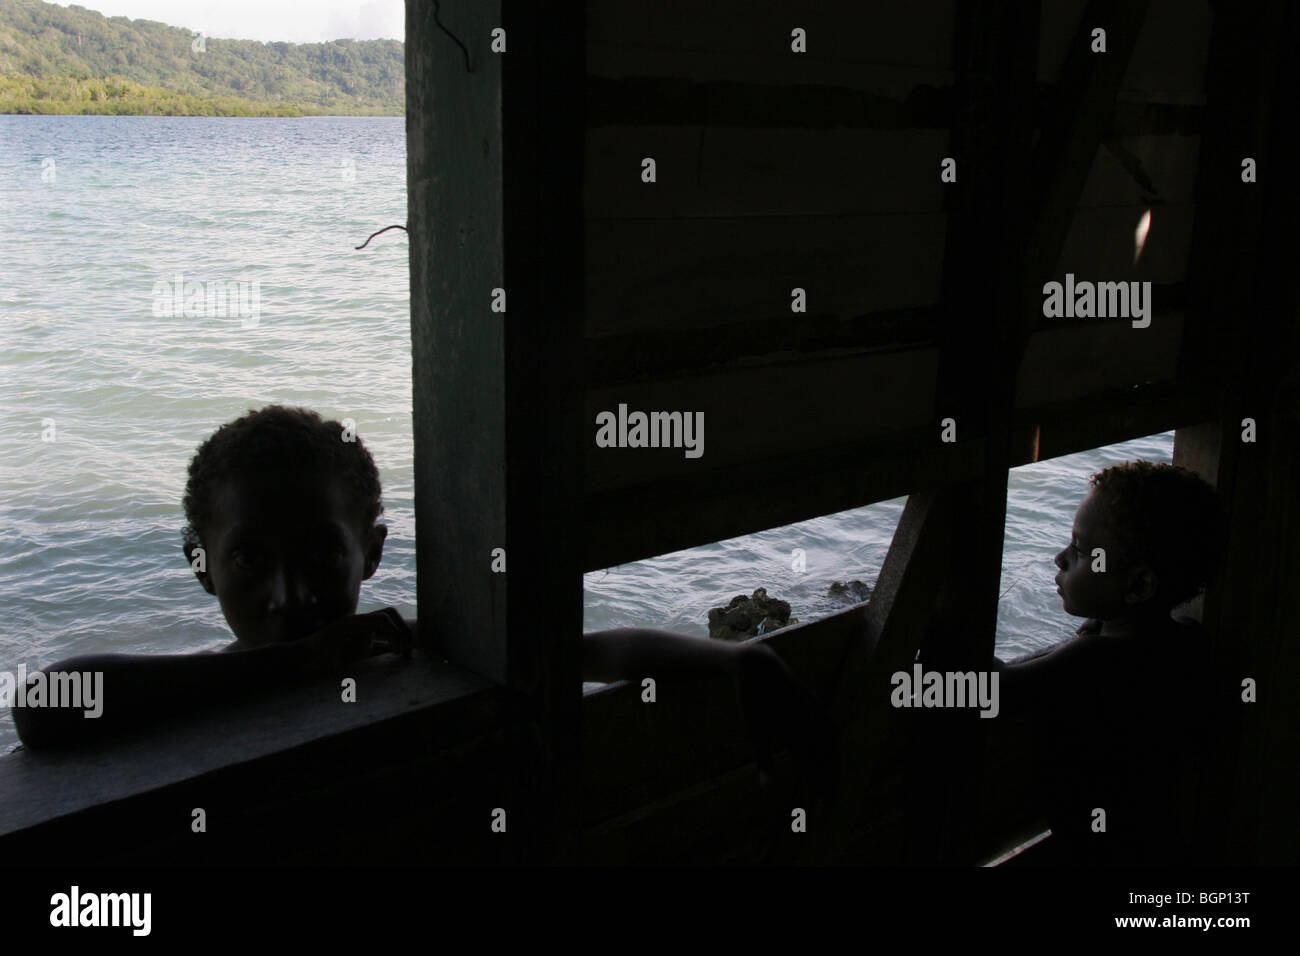 wall of a school, against which the ocean waves now reach, on Karavat Island, Bougainville province, Papua New Guinea - Stock Image